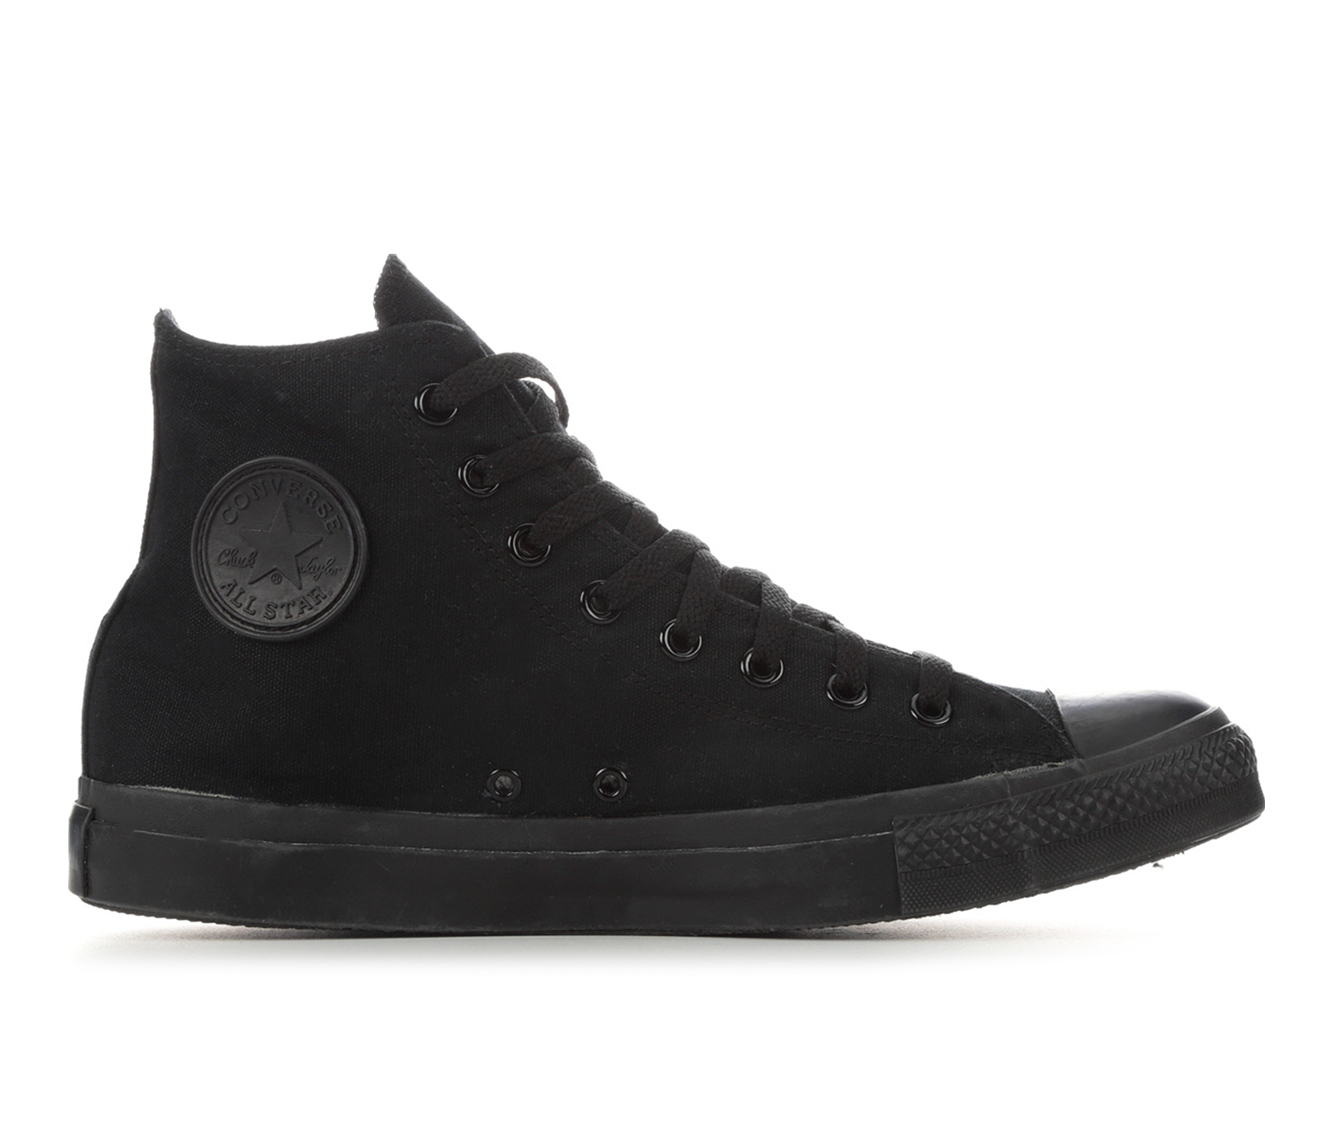 Adult Converse All Star Chuck Taylor High Top Sneakers